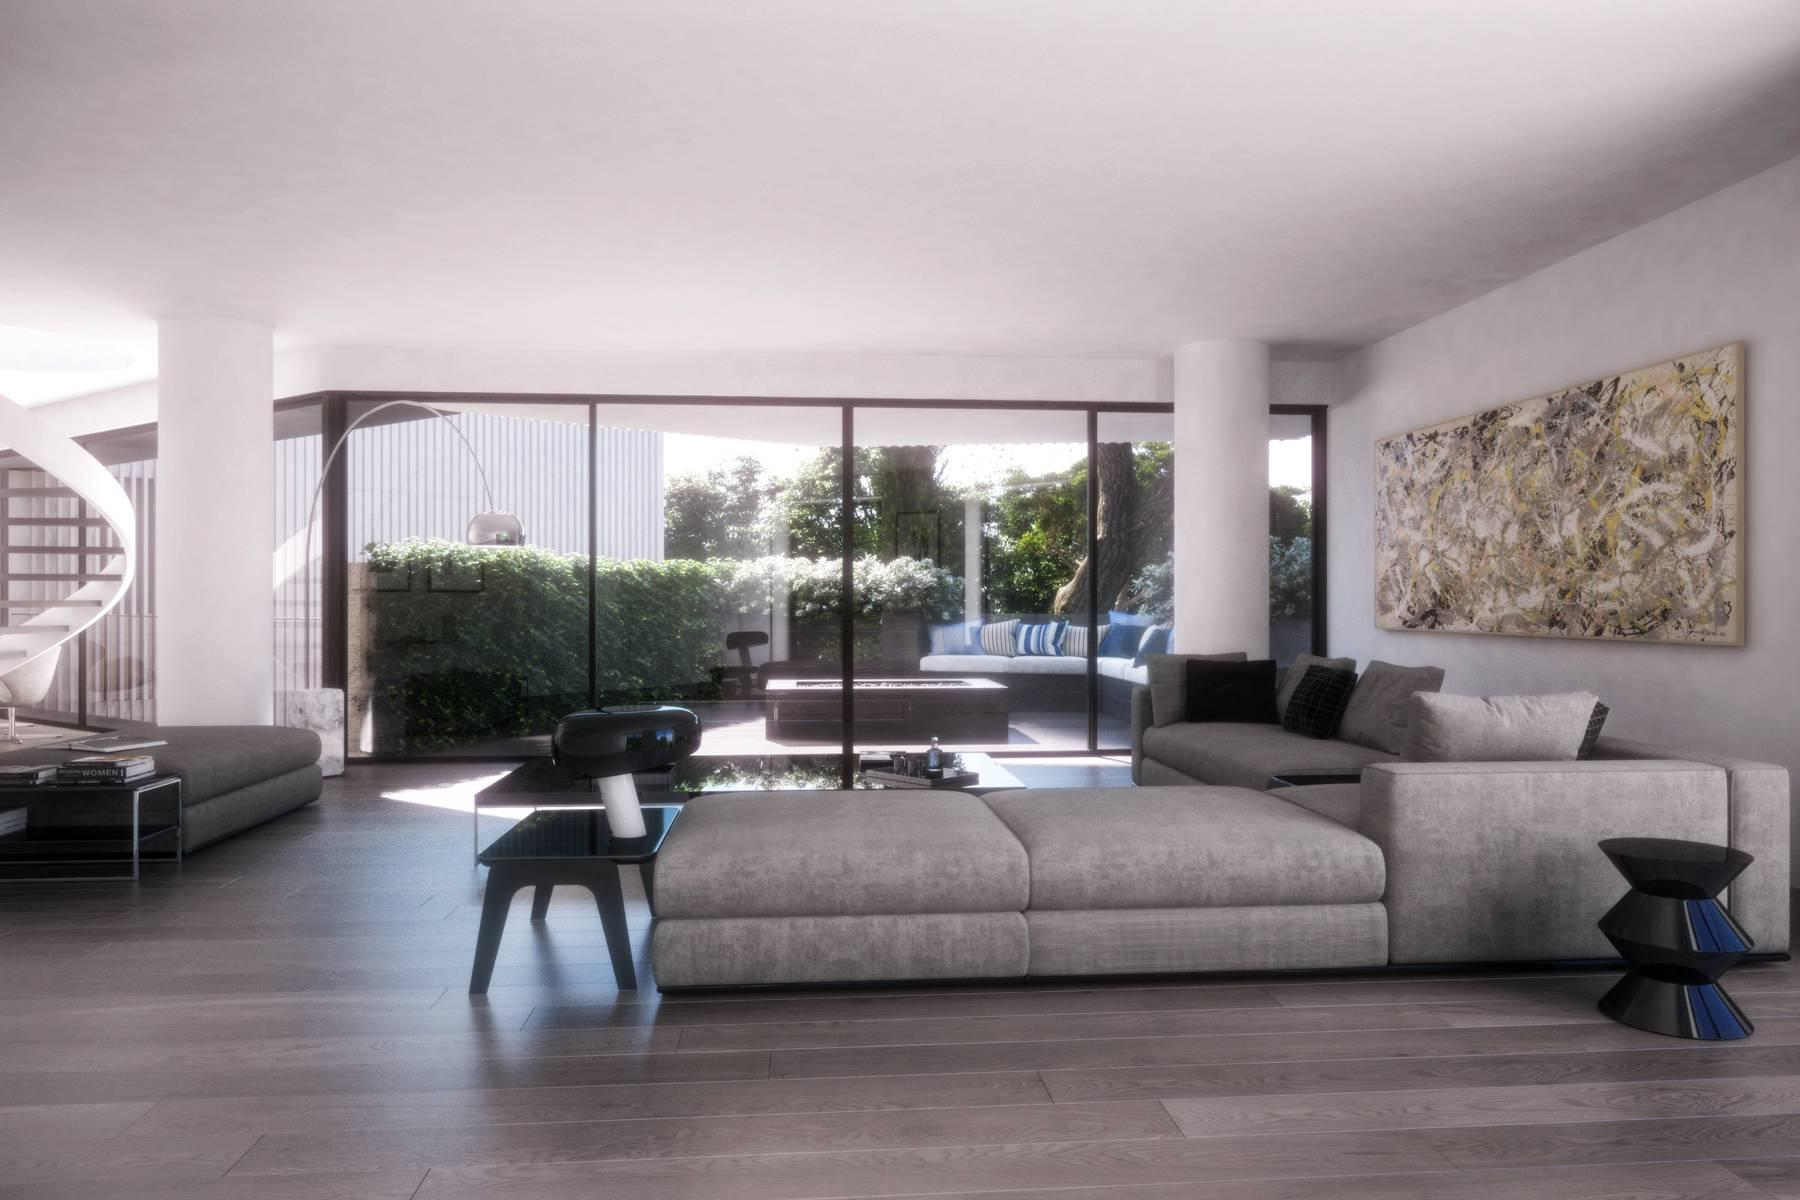 Camilluccia 535: the quiet of the countryside in the heart of Rome - Penthouse - 3